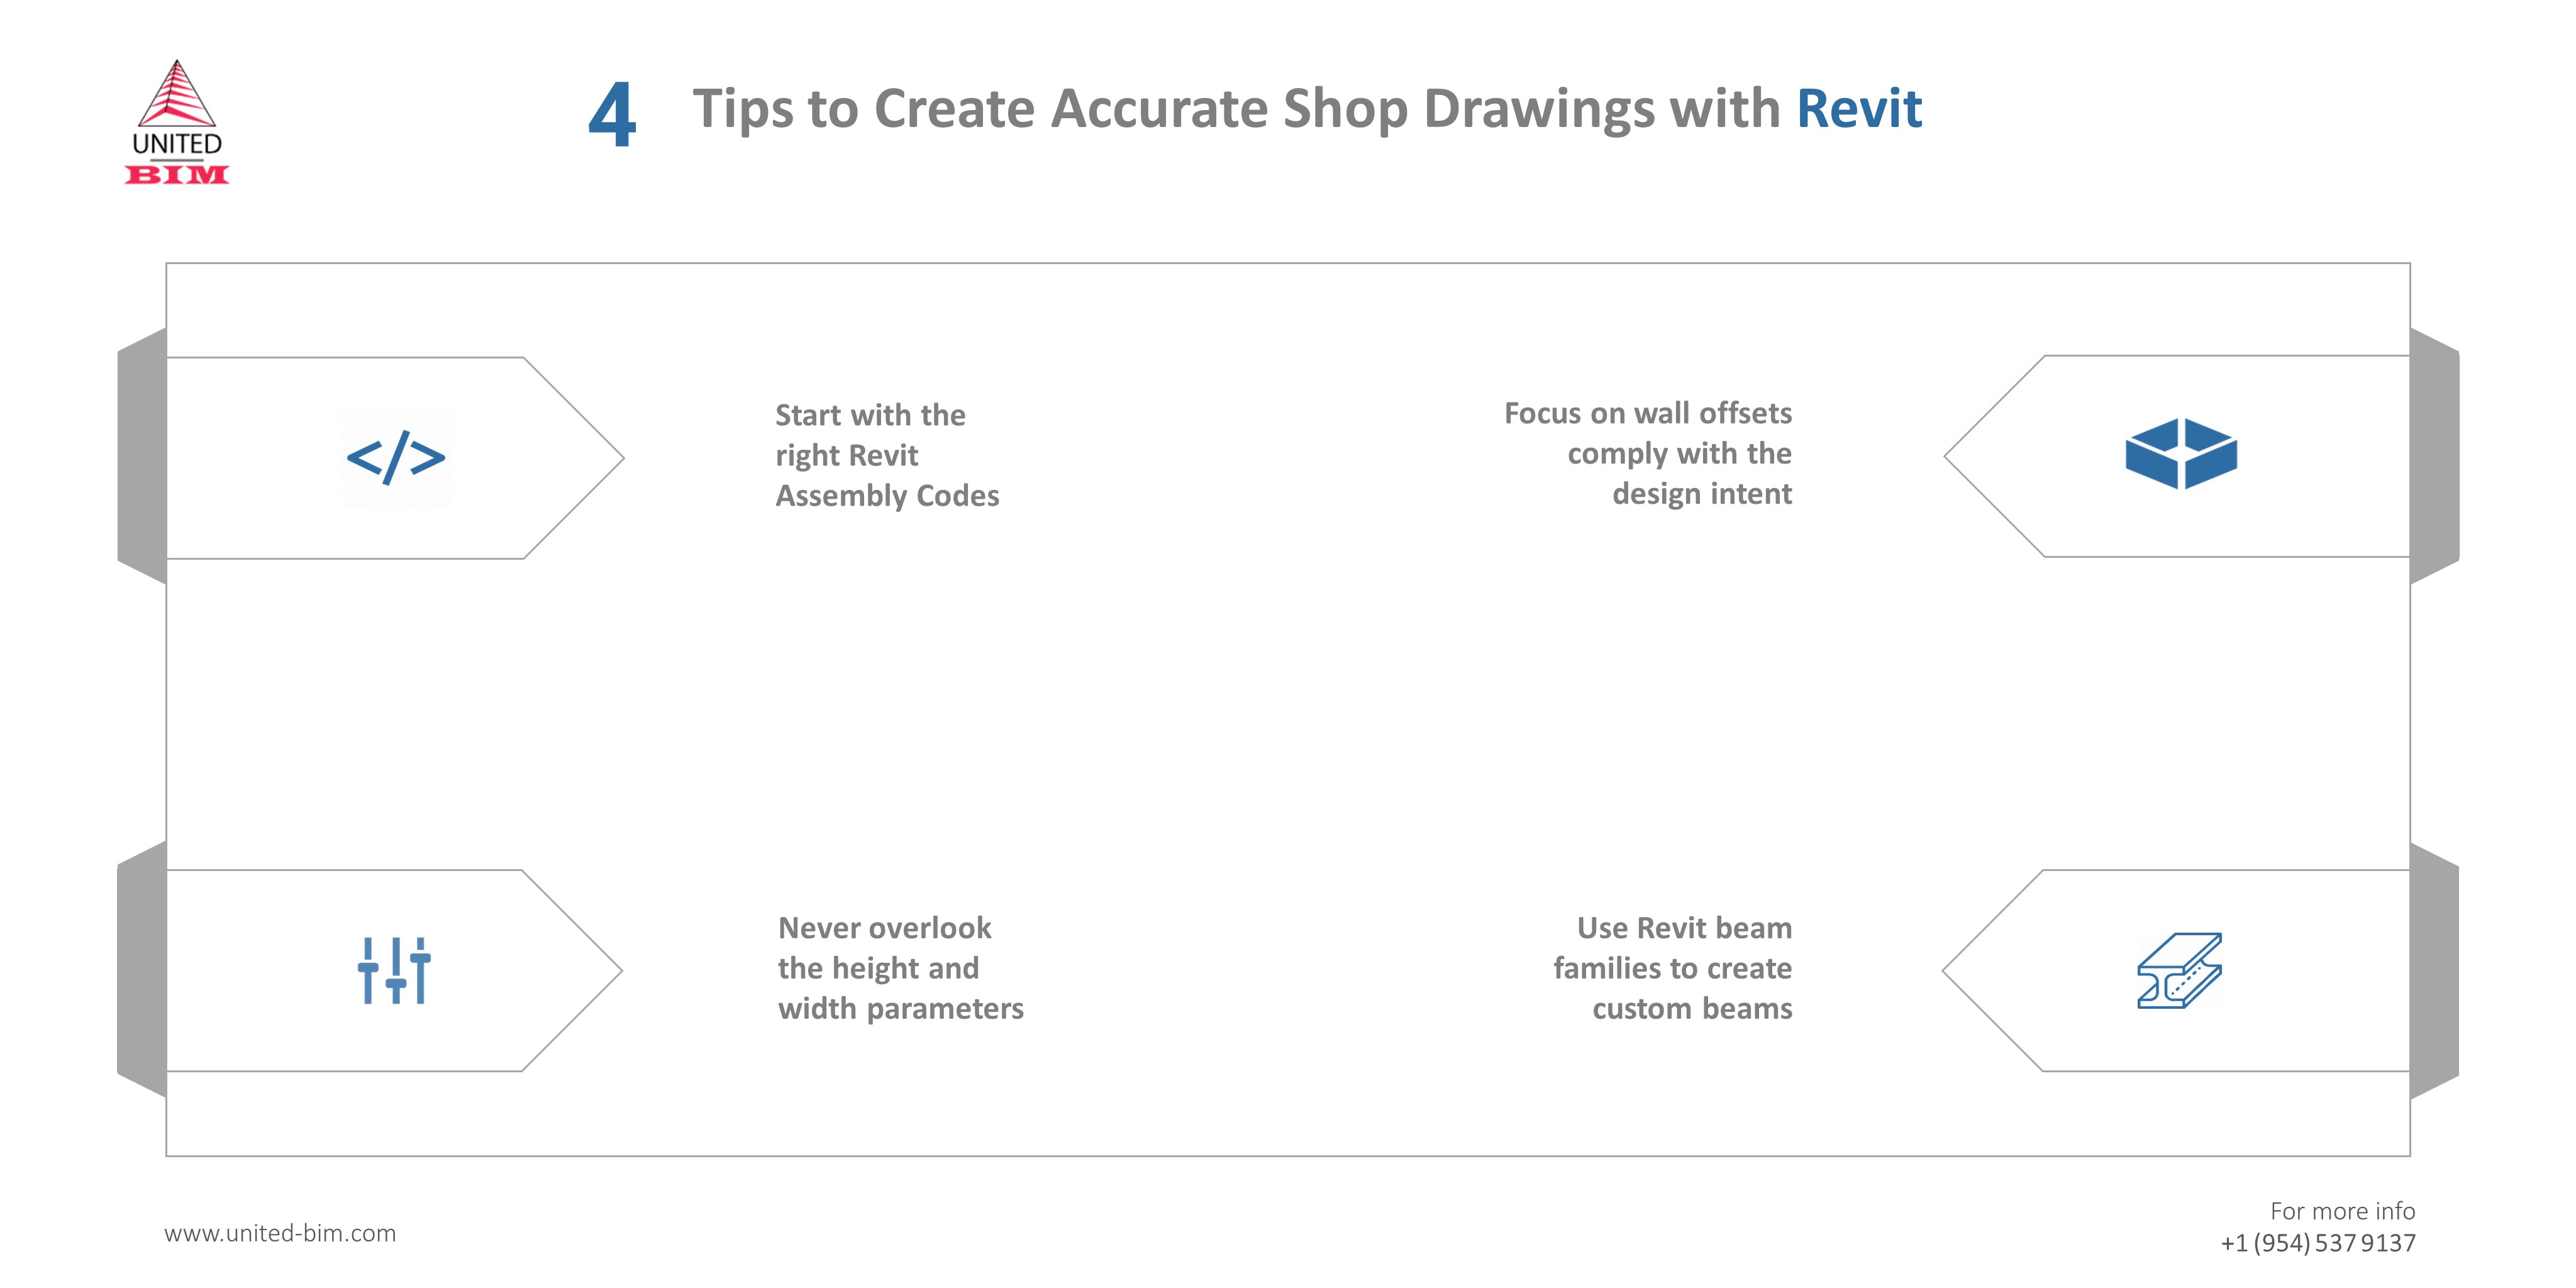 4 Useful Tips to Create Accurate Shop Drawings with Revit by United-BIM